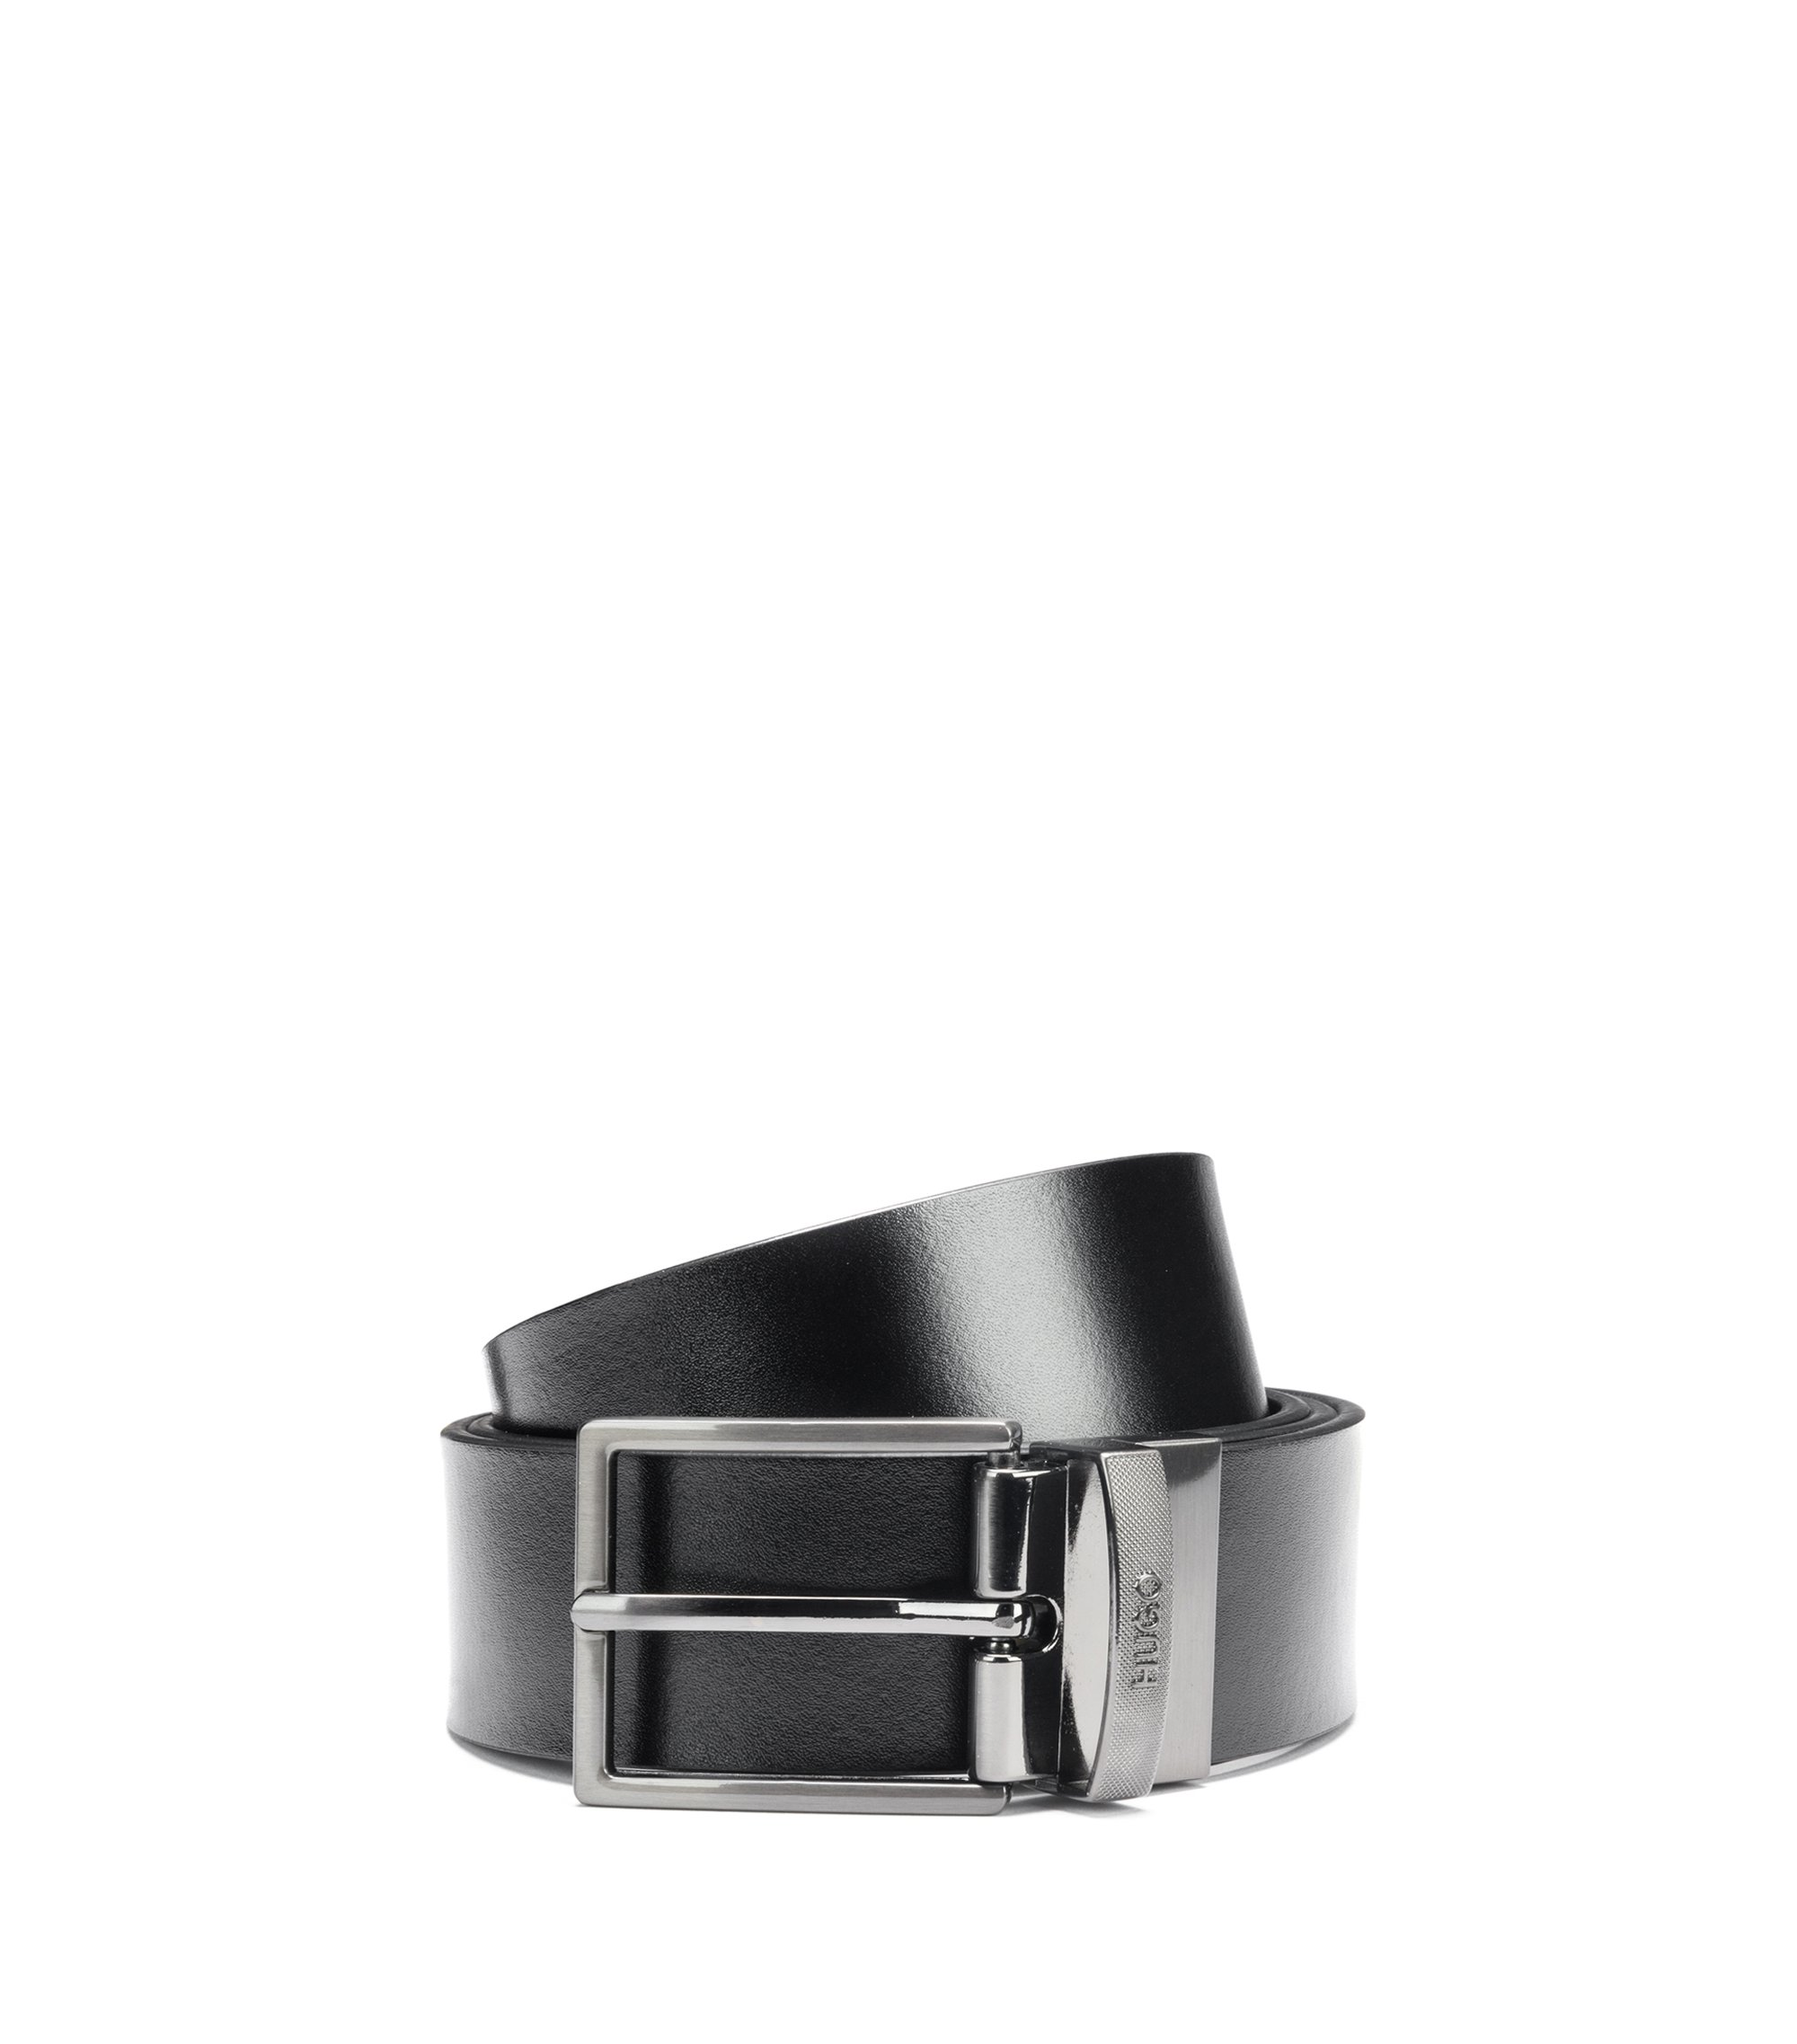 Reversible leather belt with textured metal pin and plaque buckles, Black